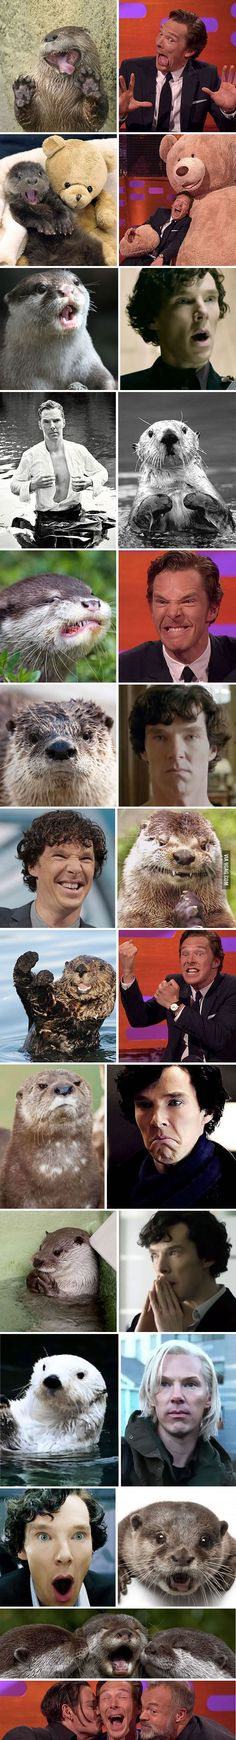 Rumors confirmed: Benedict Cumberbatch is an otter! - www.viralpx.com | www.facebook.com/viralpx